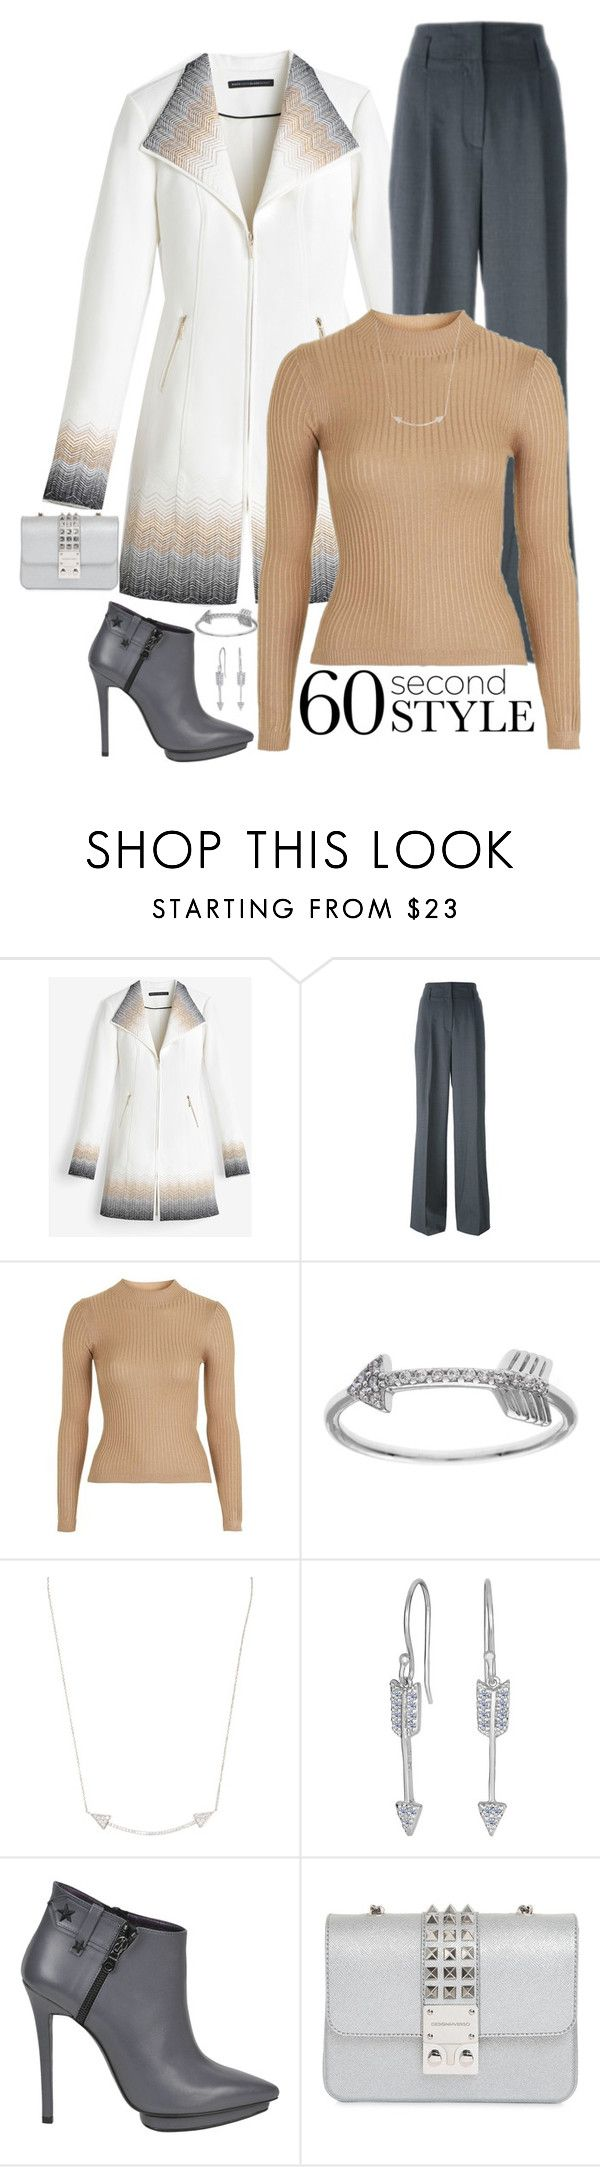 """60 Second Style"" by susan0219 ❤ liked on Polyvore featuring White House Black Market, MICHAEL Michael Kors, Topshop, La Preciosa, Karma Jewels, Marc Ellis, Design Inverso, ombre and 60secondstyle"